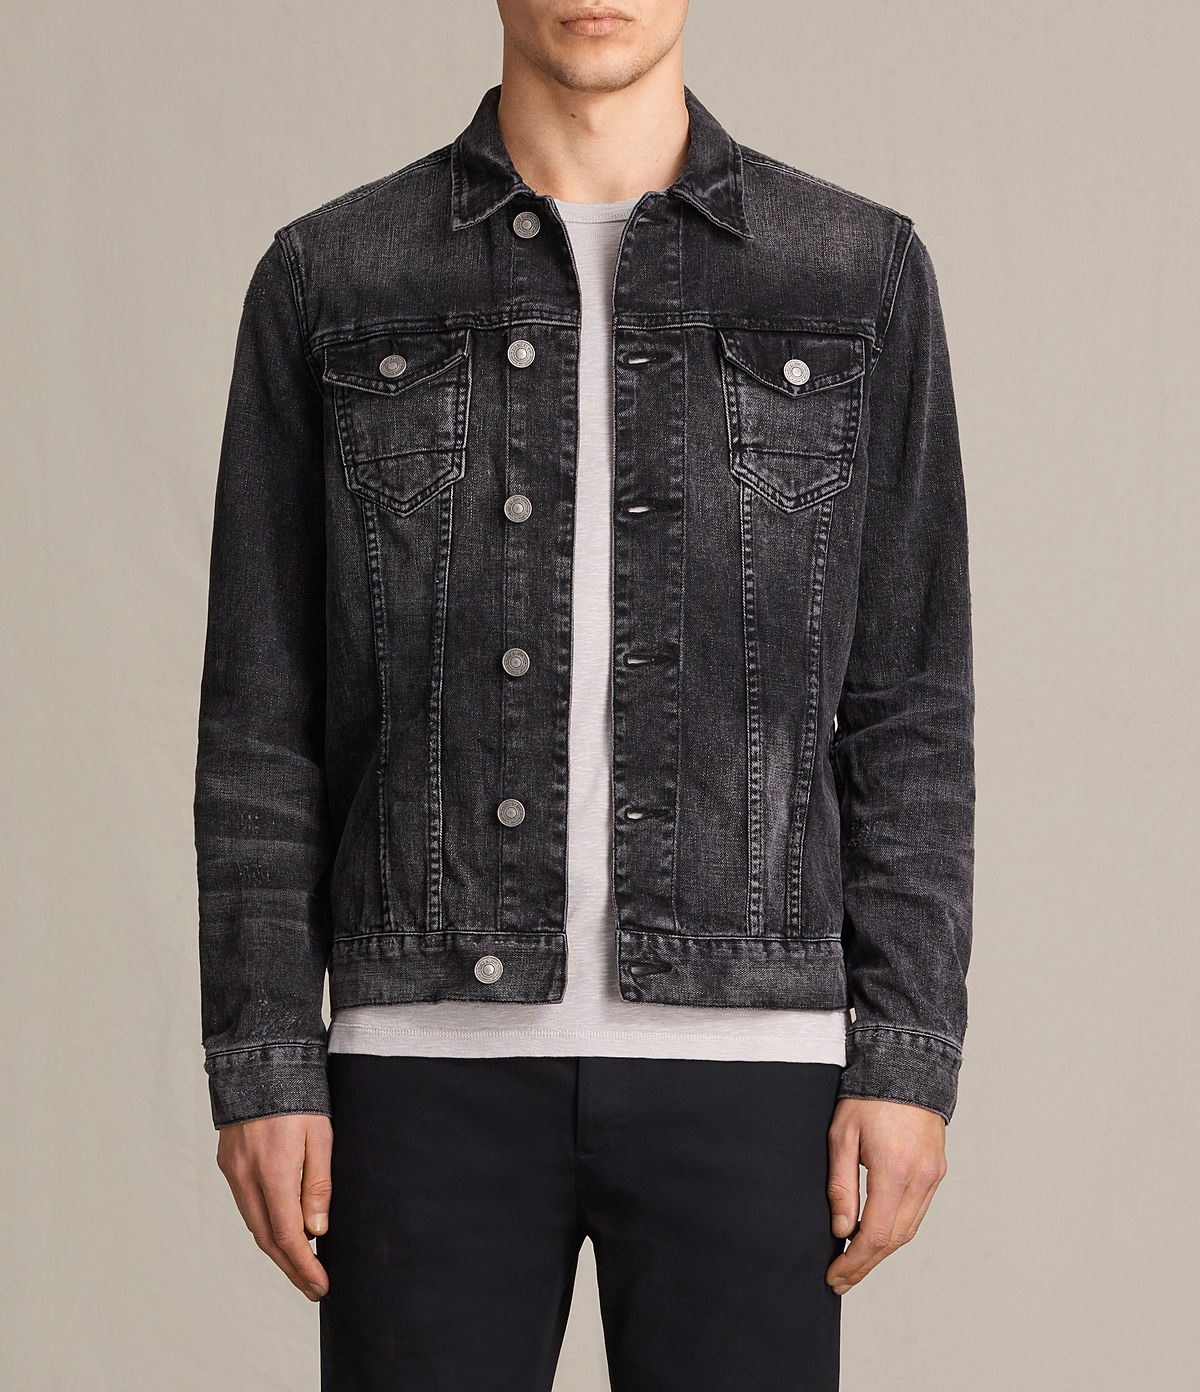 ALLSAINTS UK: Men&39s jackets shop now.